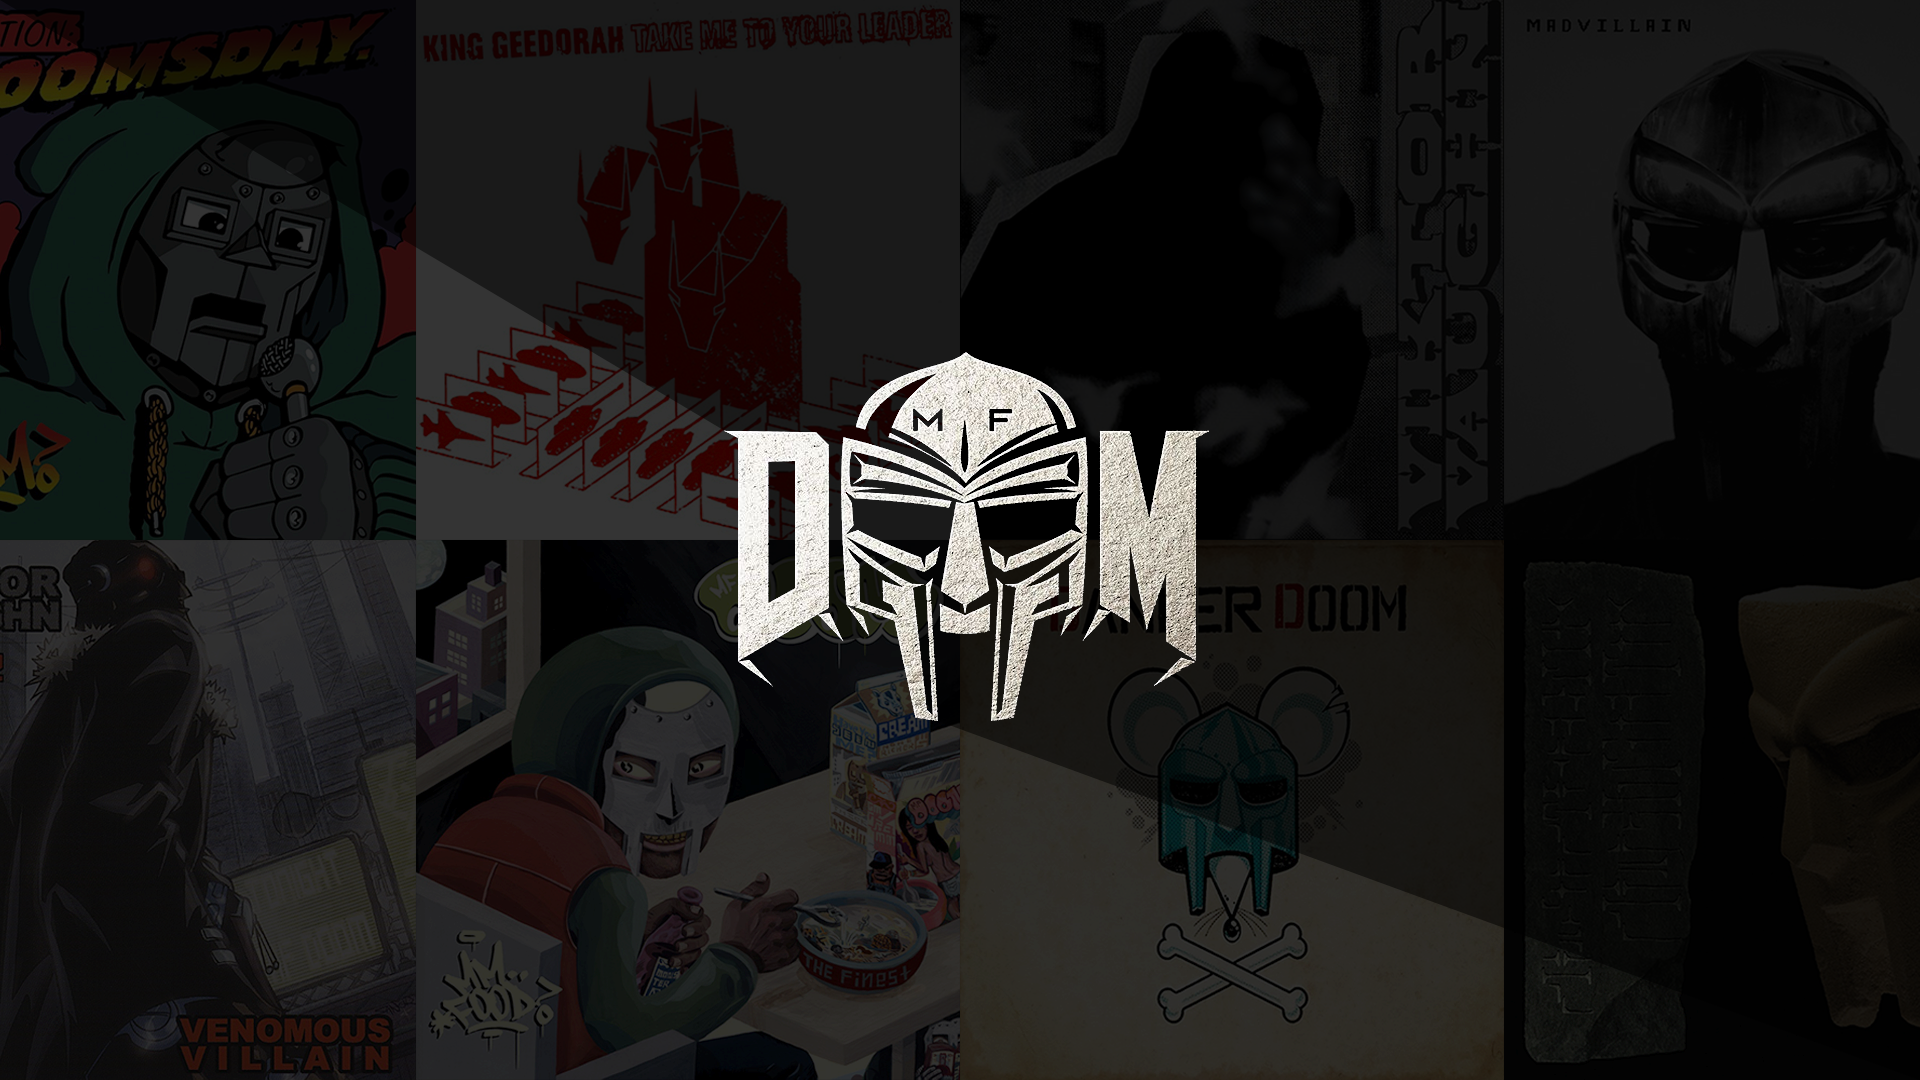 [1920x1080] Quick MF DOOM Wallpaper I made last night